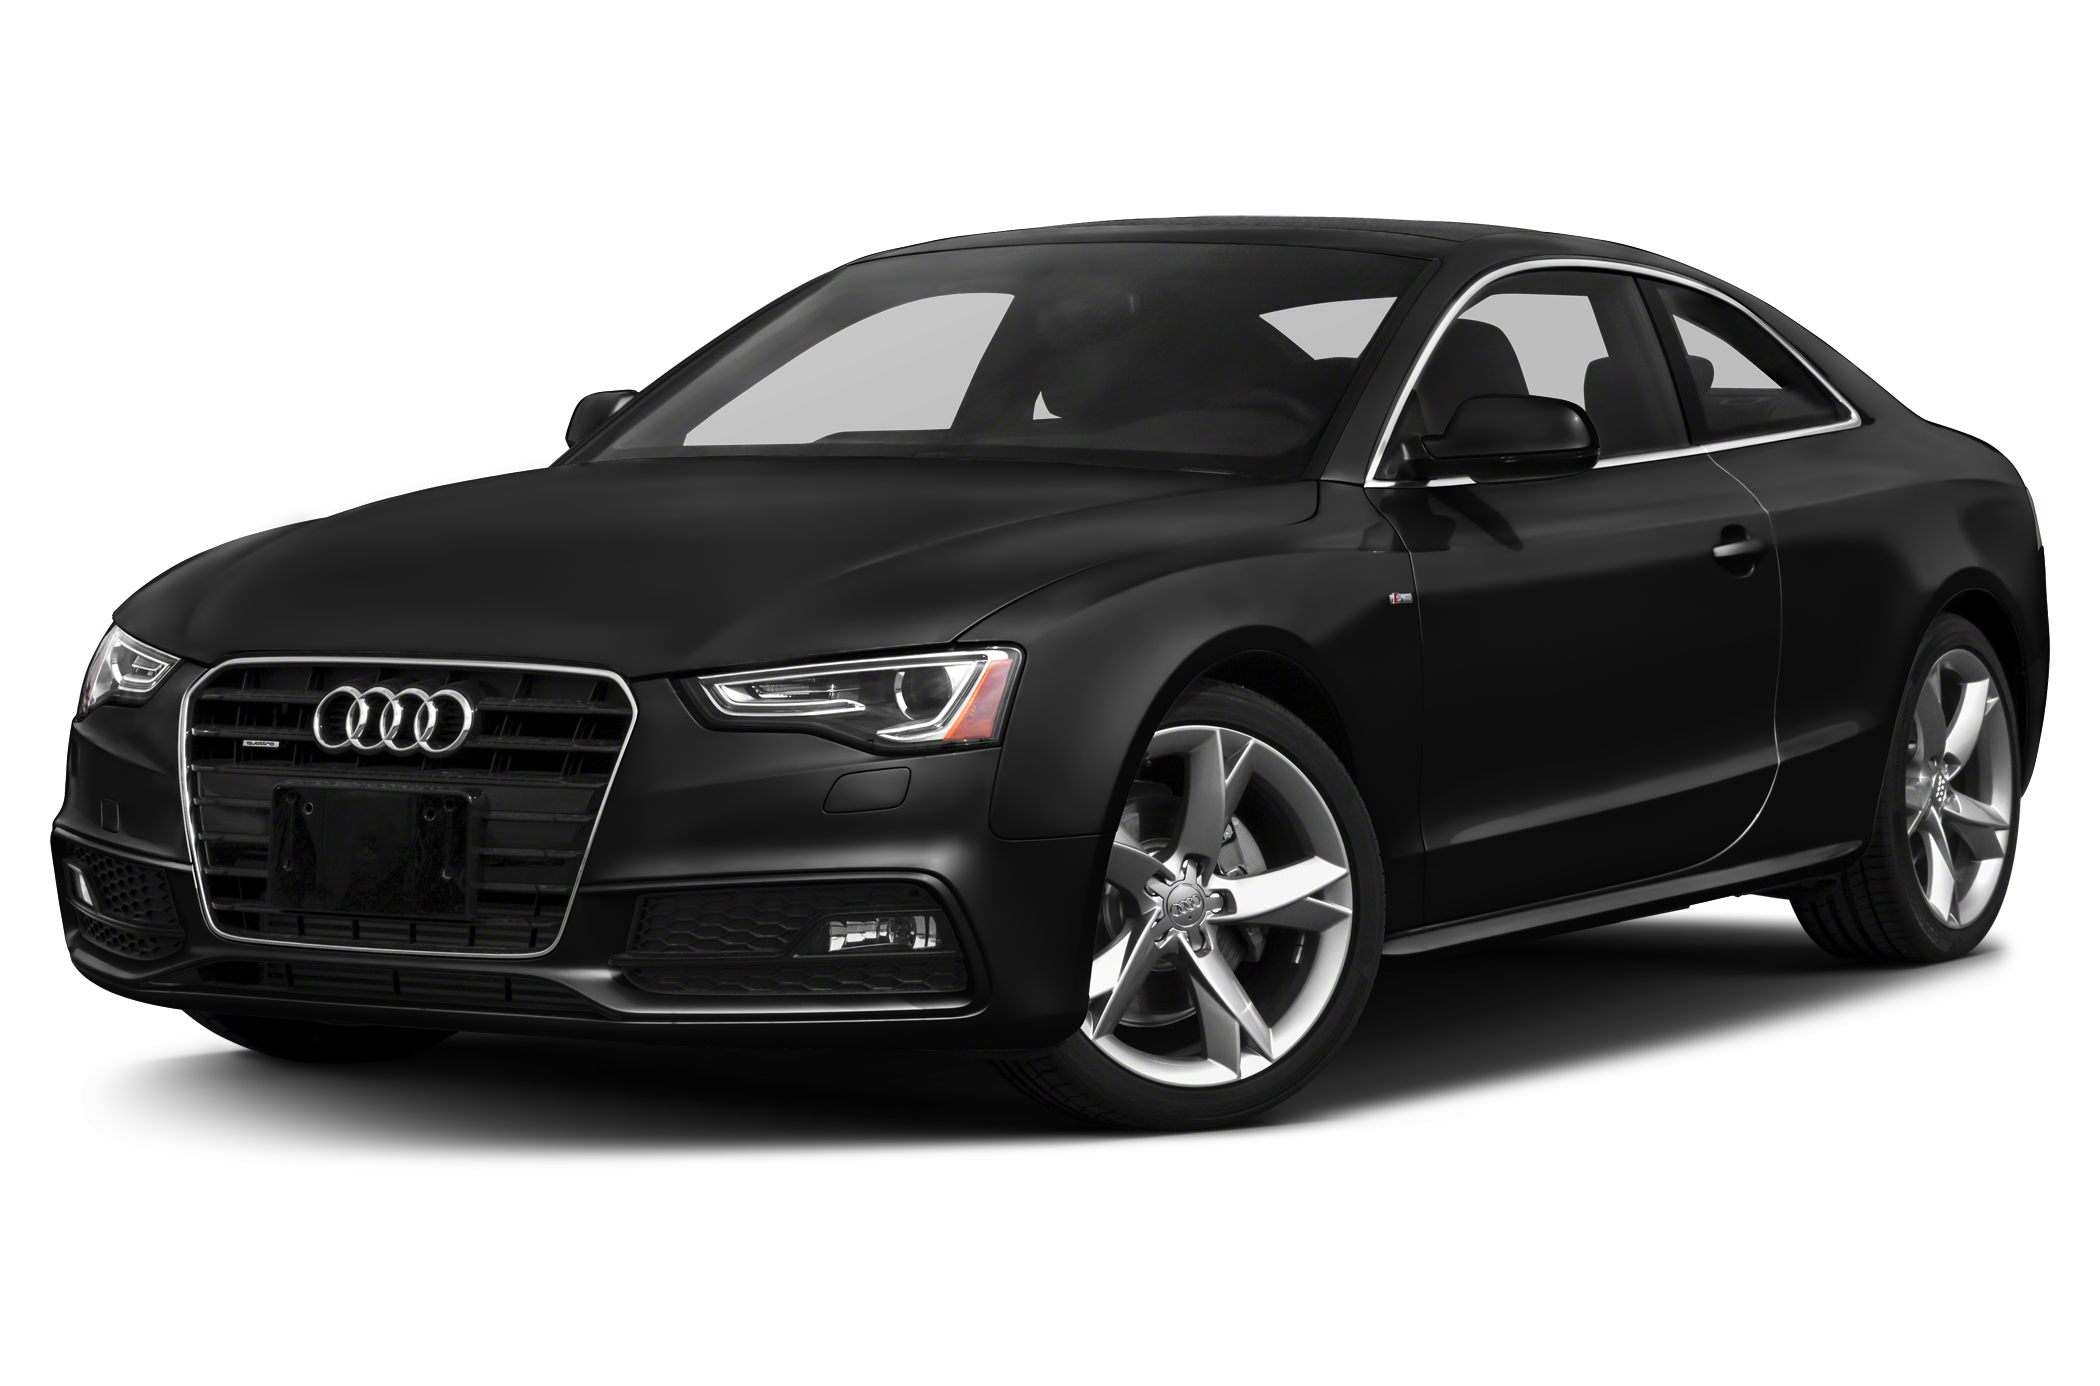 Audi A5 Backgrounds on Wallpapers Vista